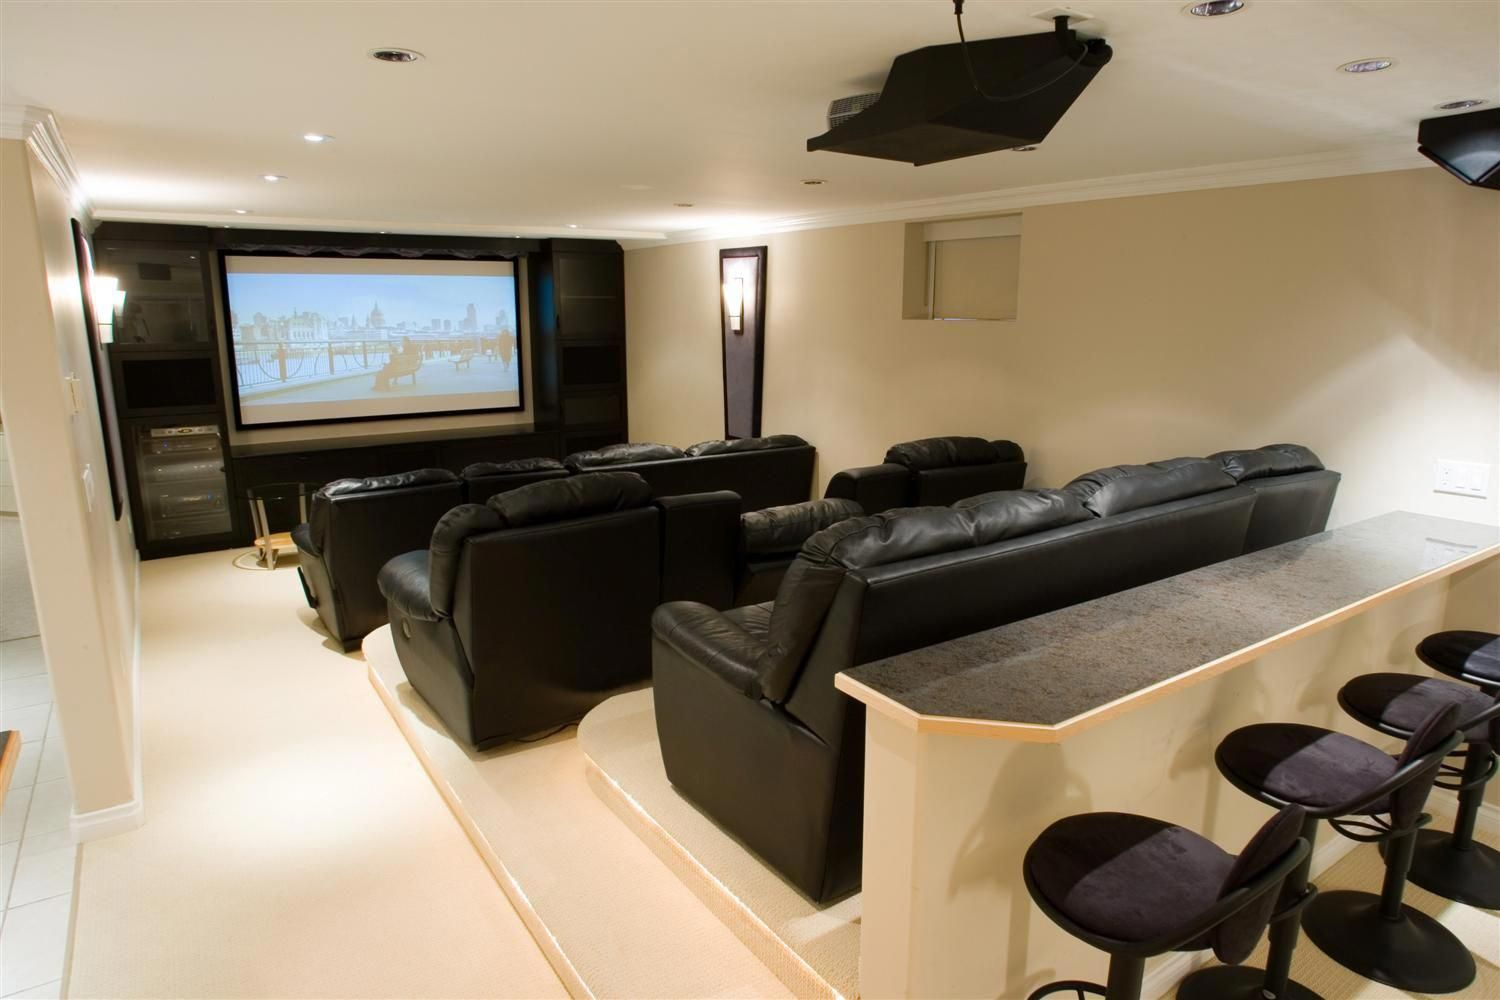 Theatre Hometheaterprojector Home Theater Projector In 2018 Wiring A Room